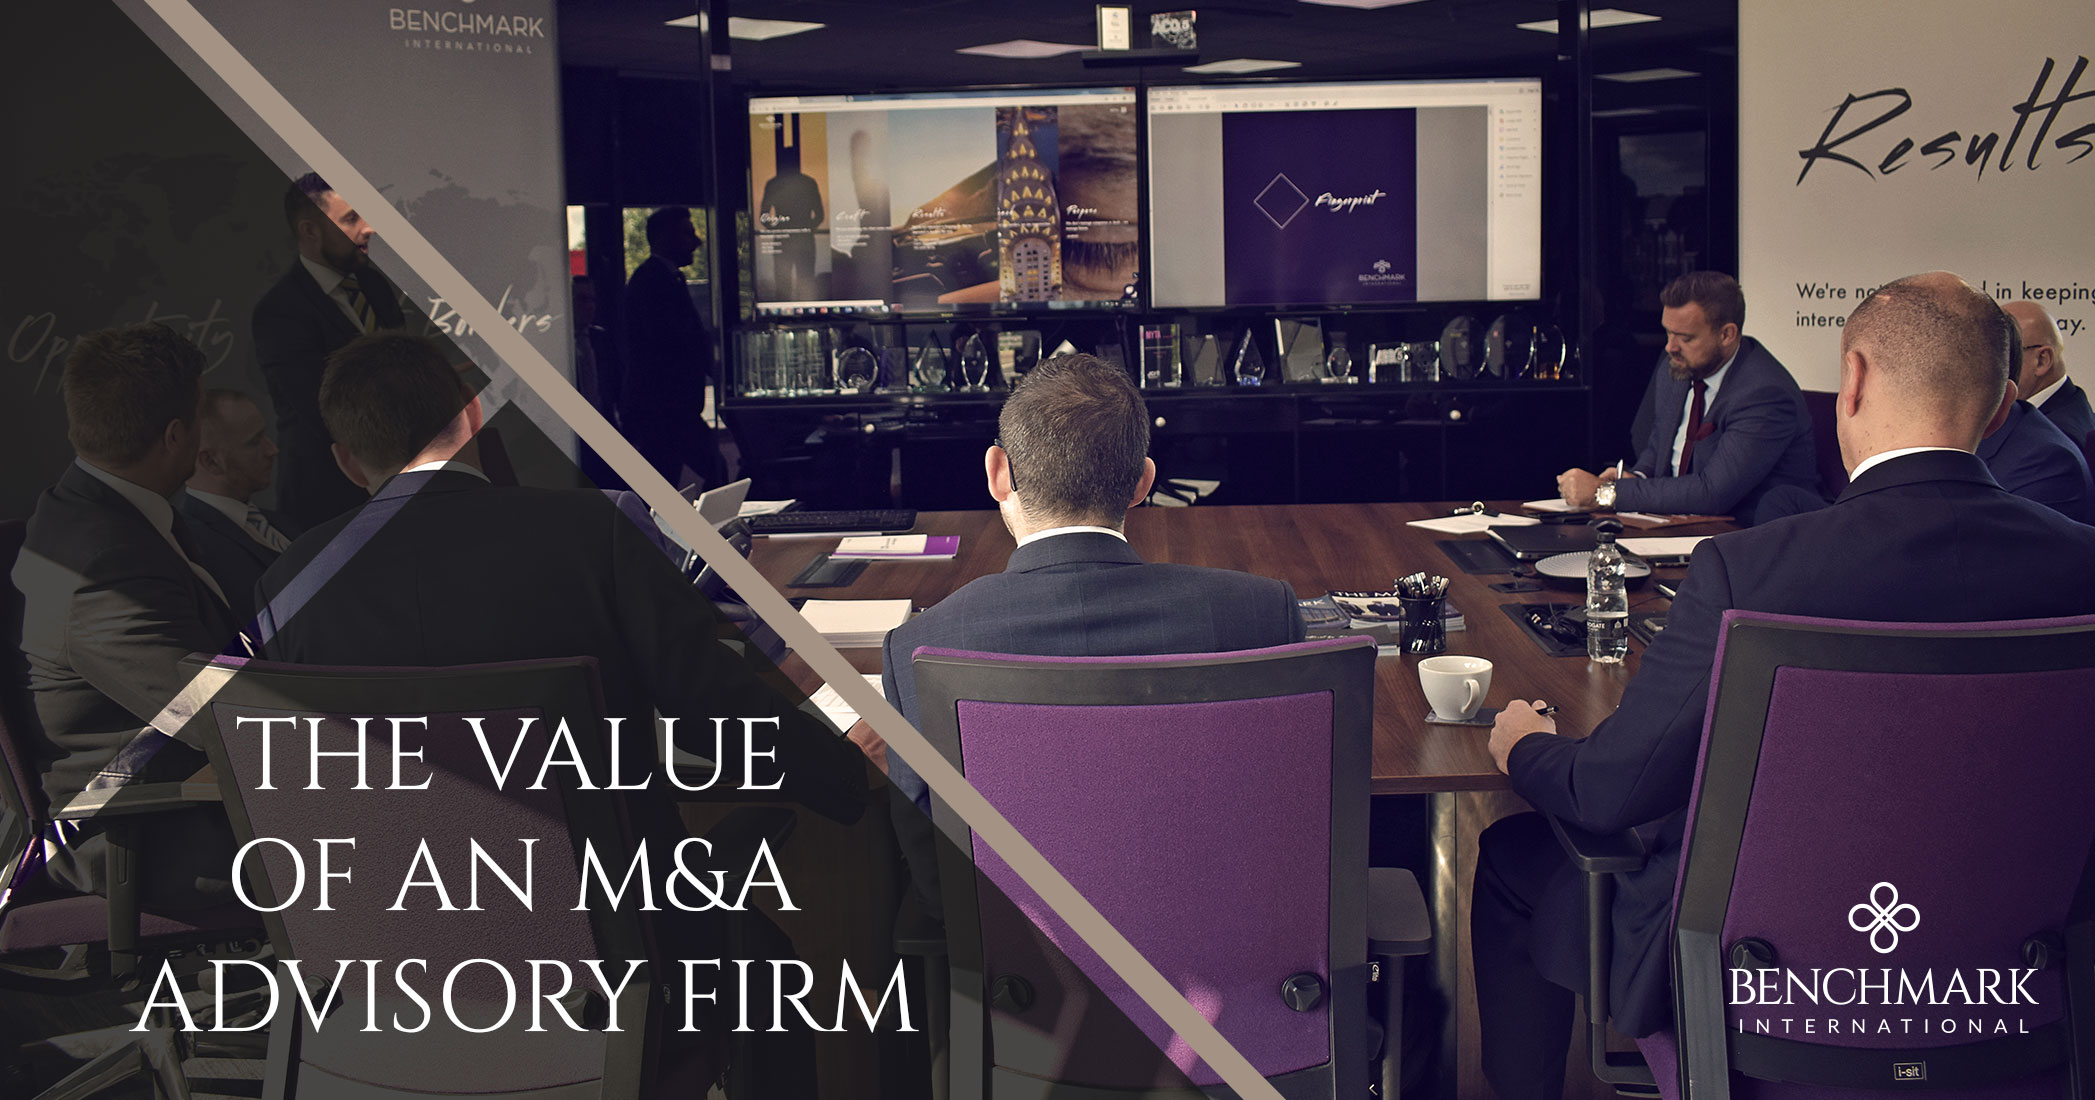 The Value Of An M&A Advisory Firm